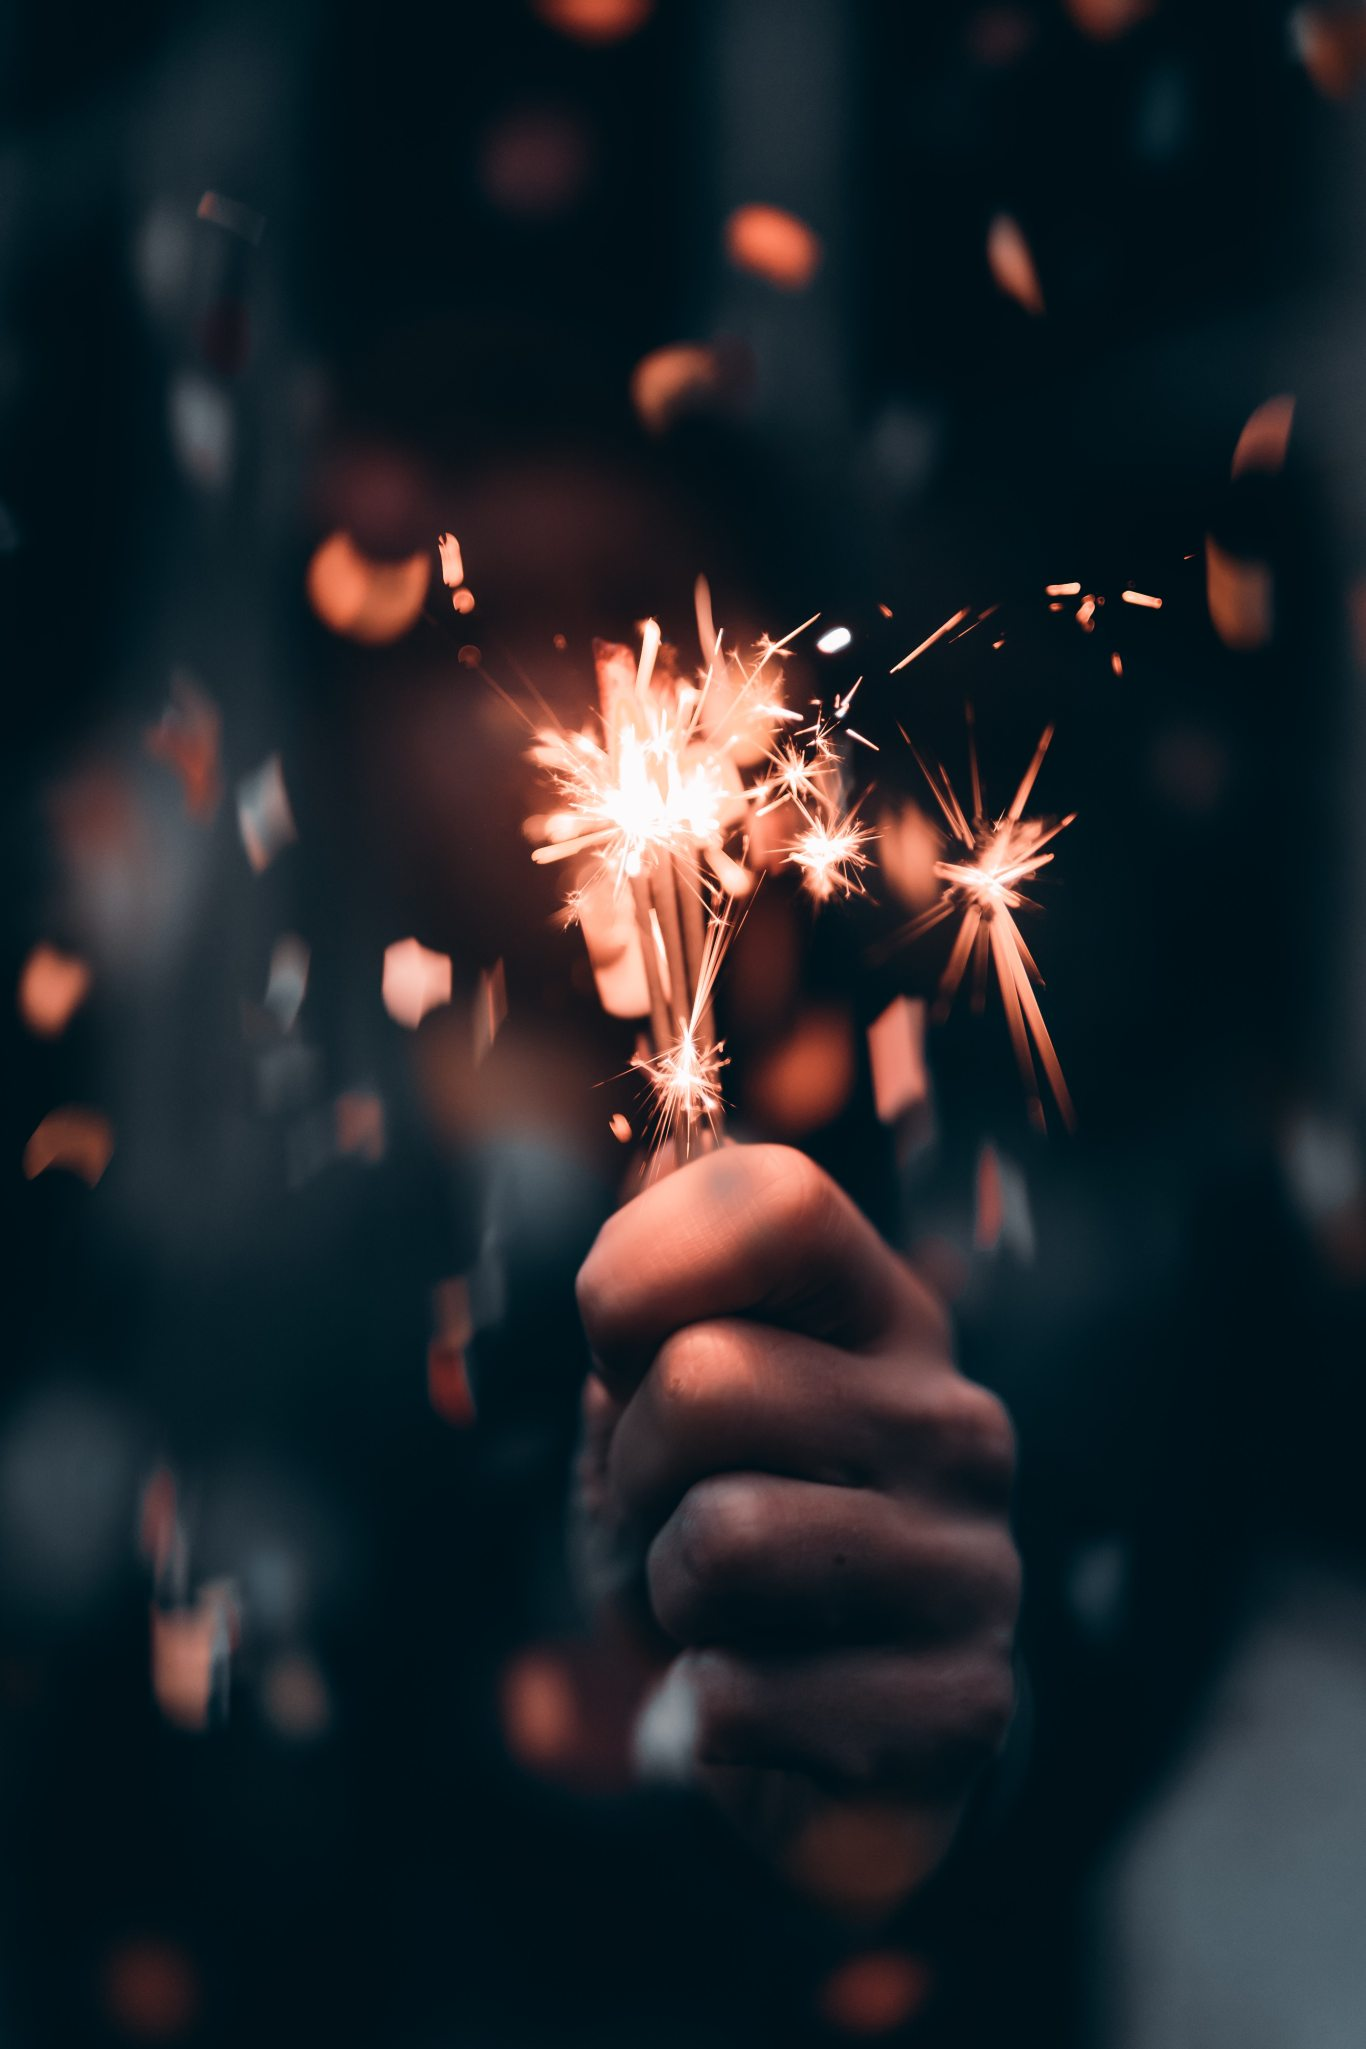 person-holding-a-sparkler-in-macro-photography-3264533